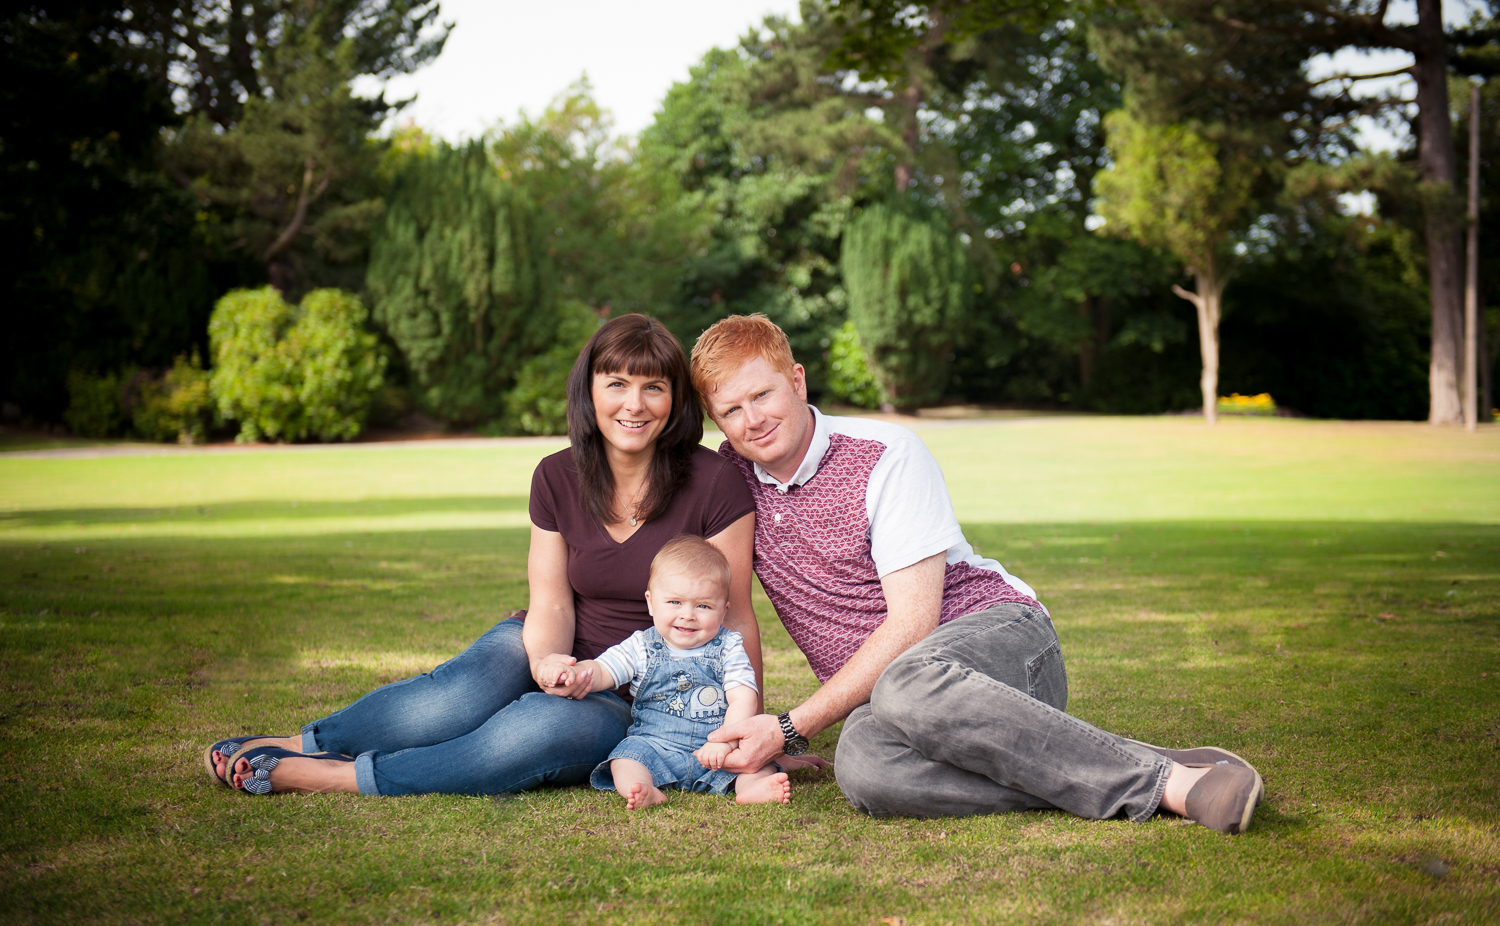 family of 3 in macclesfield park outdoor family shoot